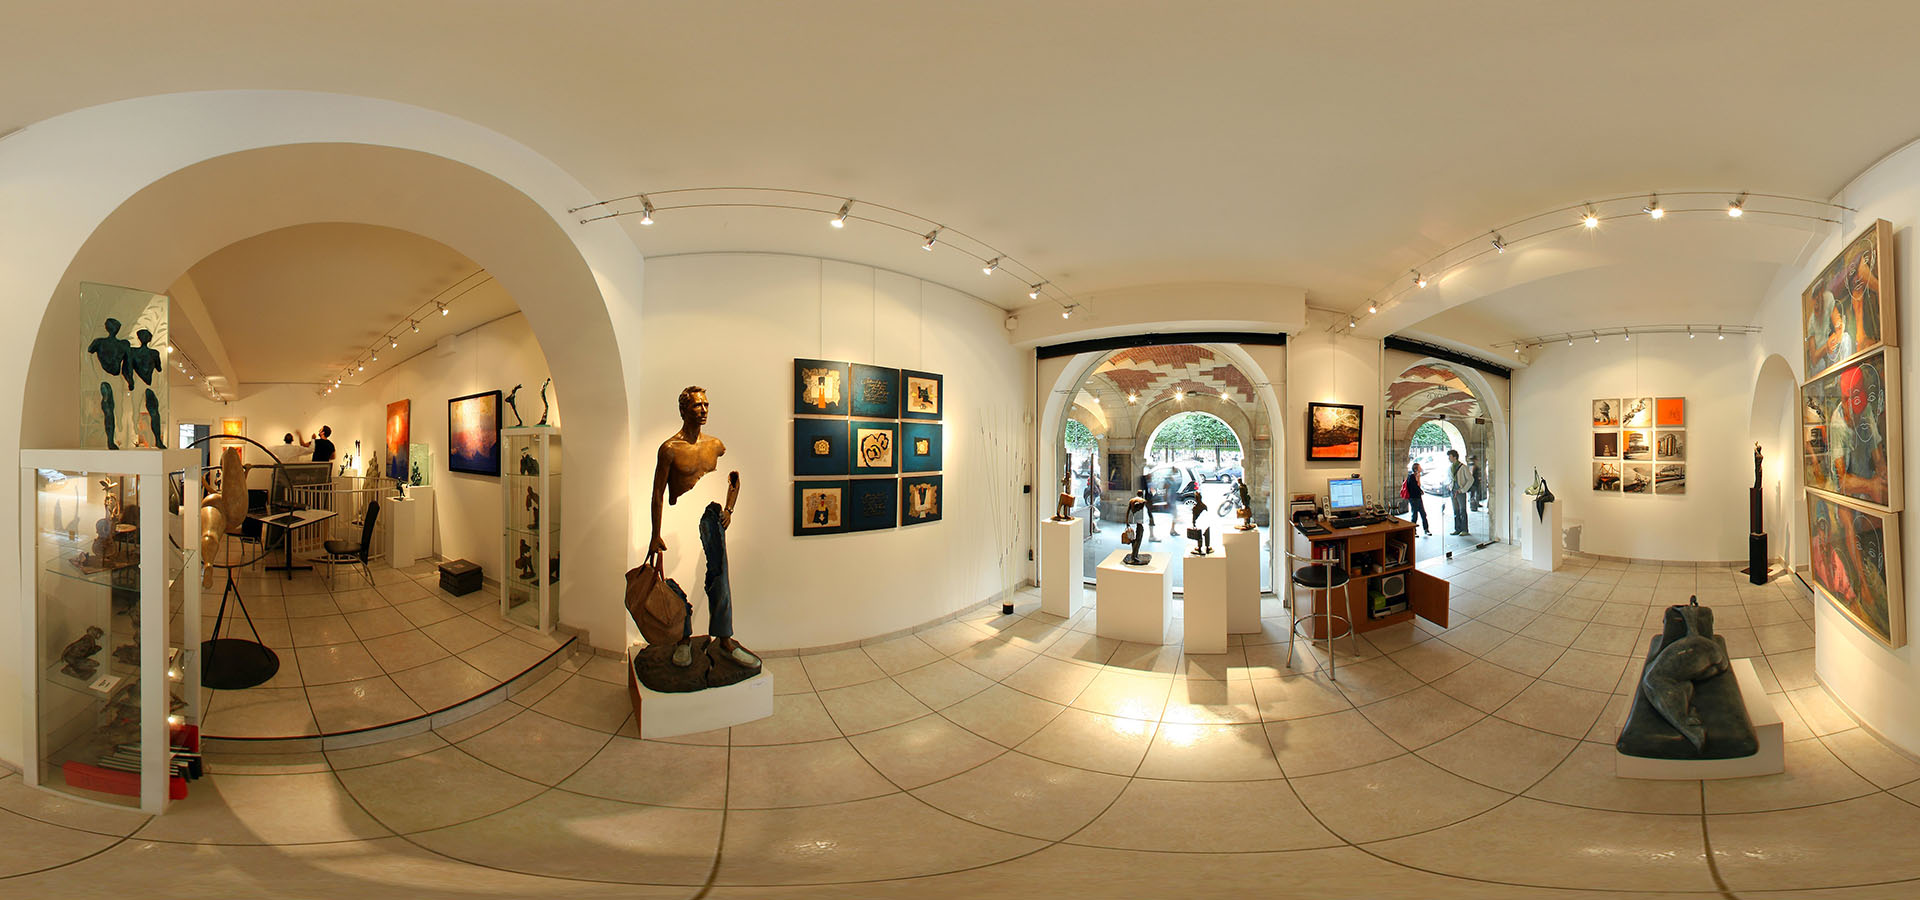 Galerie_De_Medicis-Paris_360_Panorama_Virtual_Tours_OCEAN.LV_